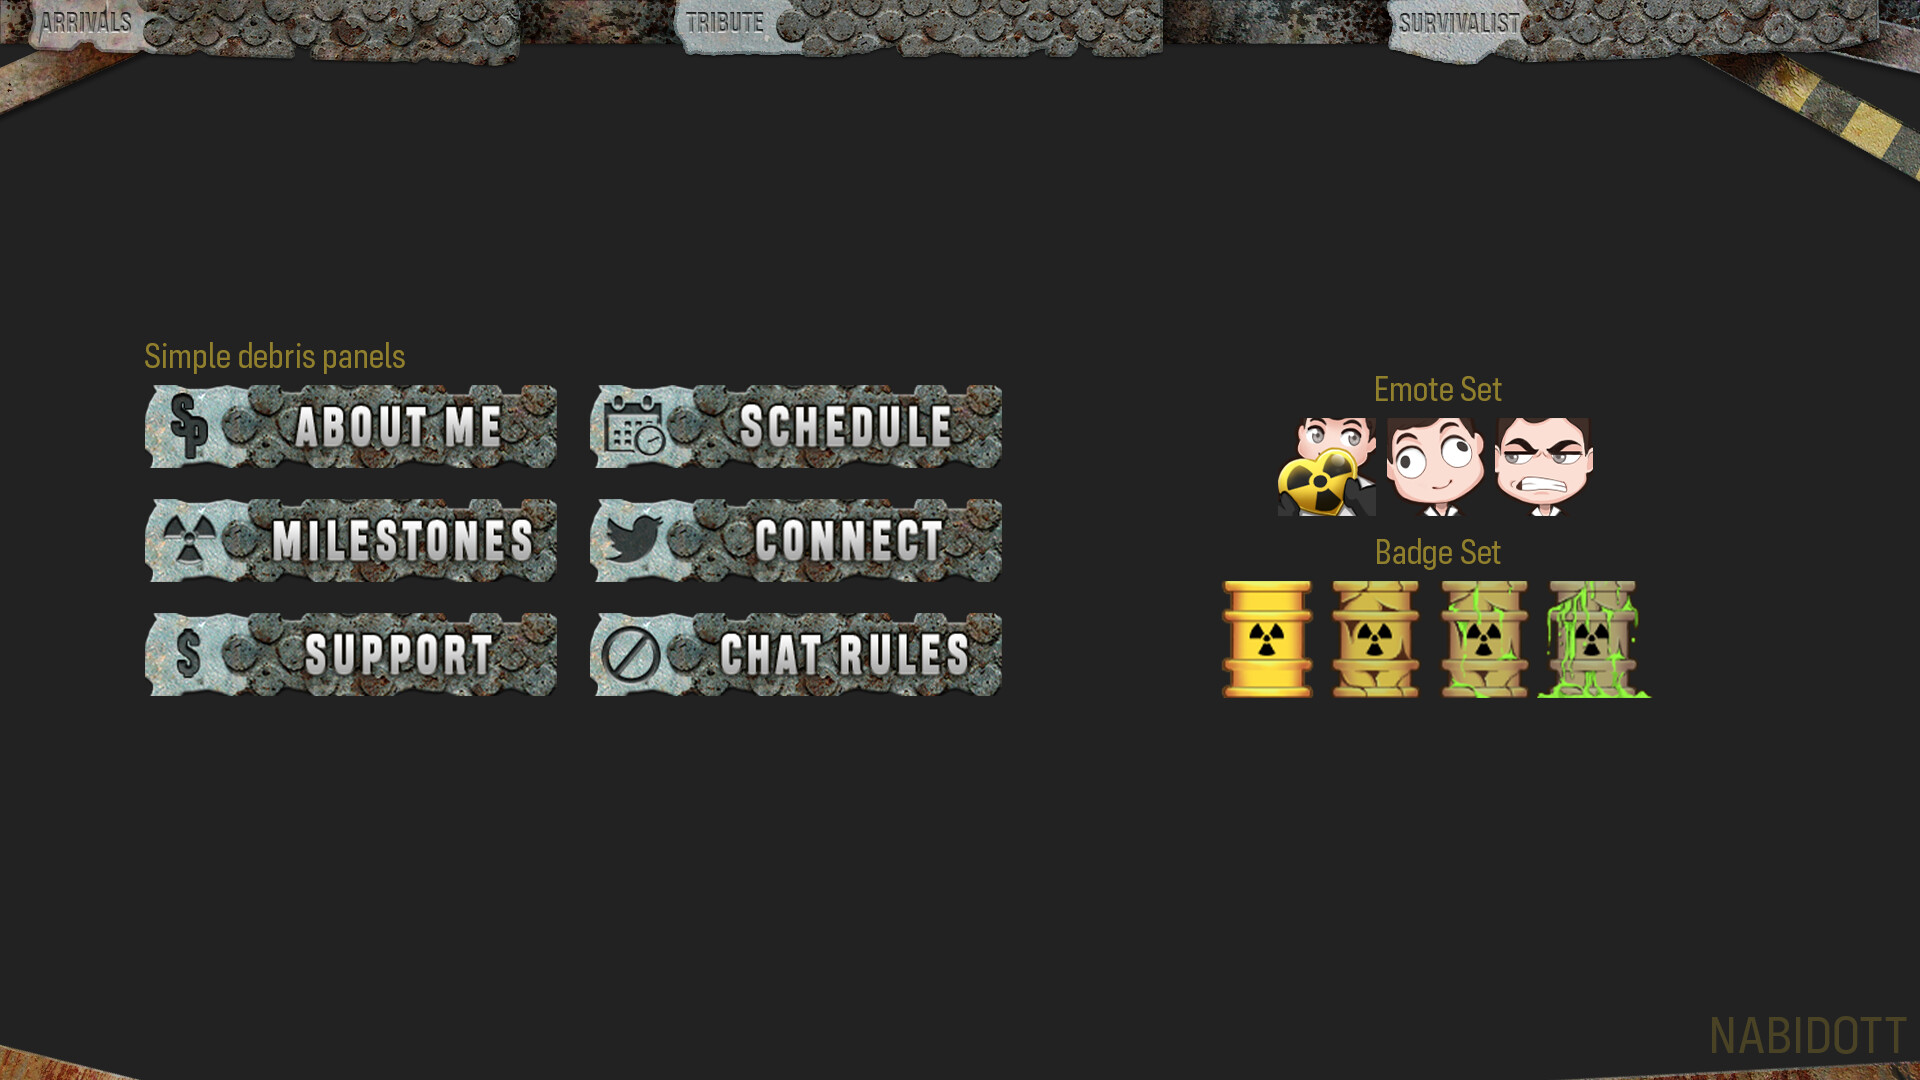 Main Scene with panels, emotes and badges